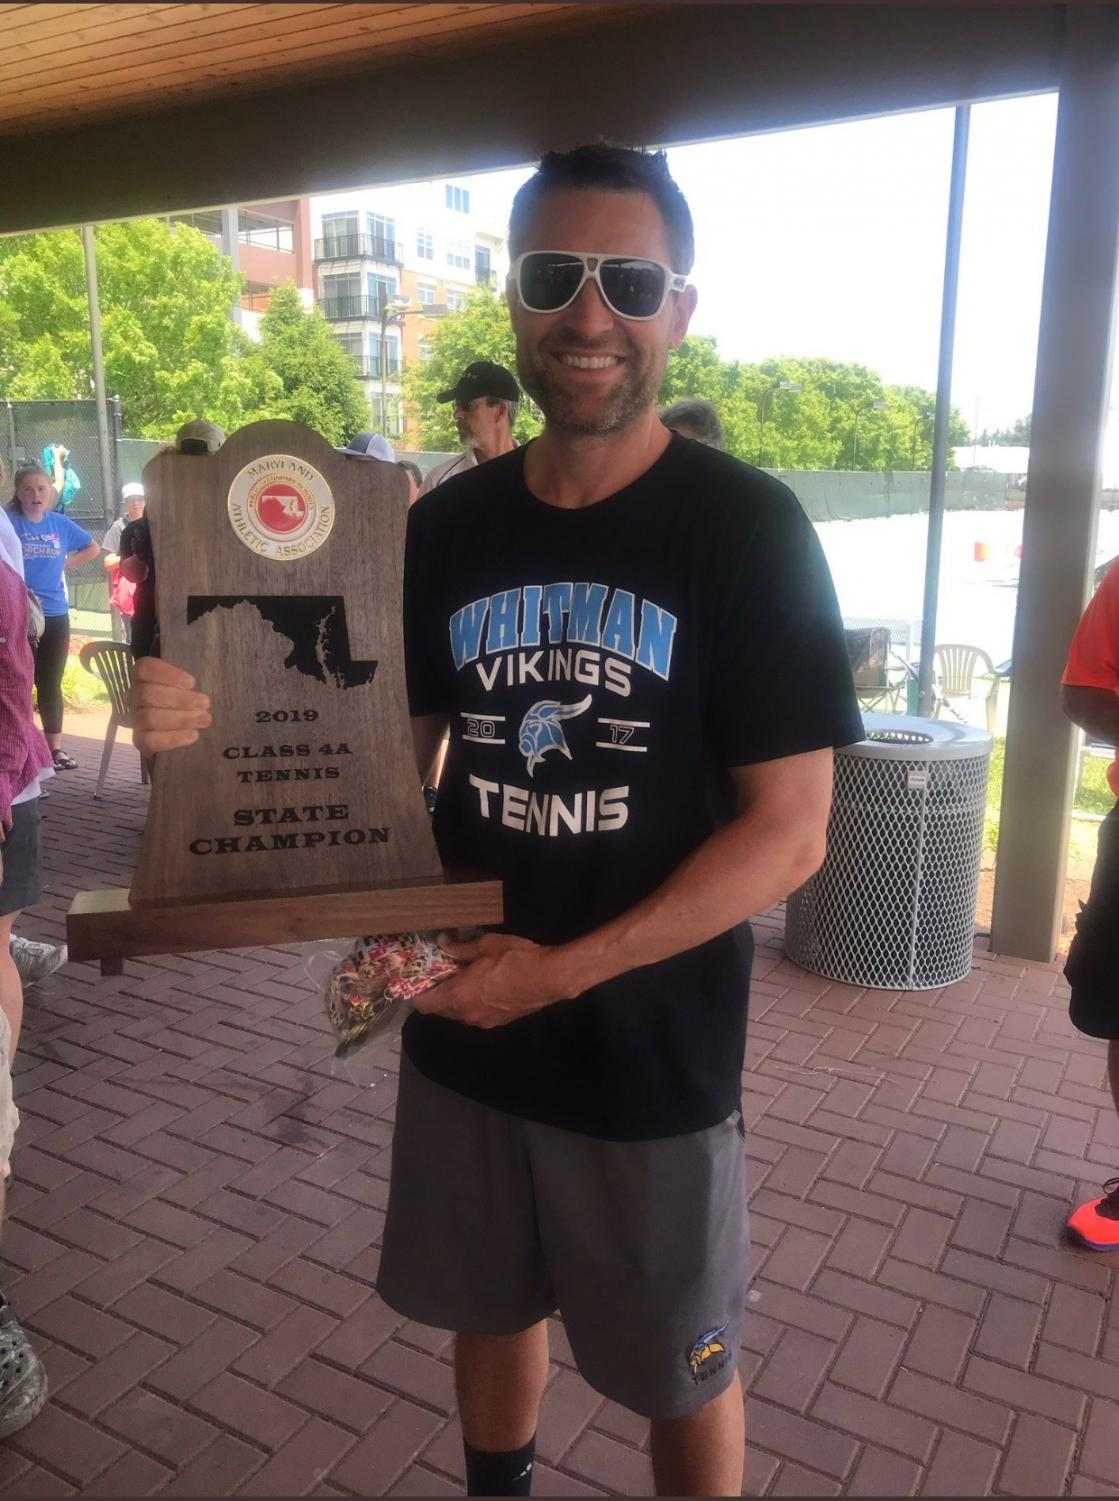 Boys tennis coach Jasen Gohn poses with the boys and girls state tennis trophy. Photo courtesy of Jeff Sullivan Twitter.